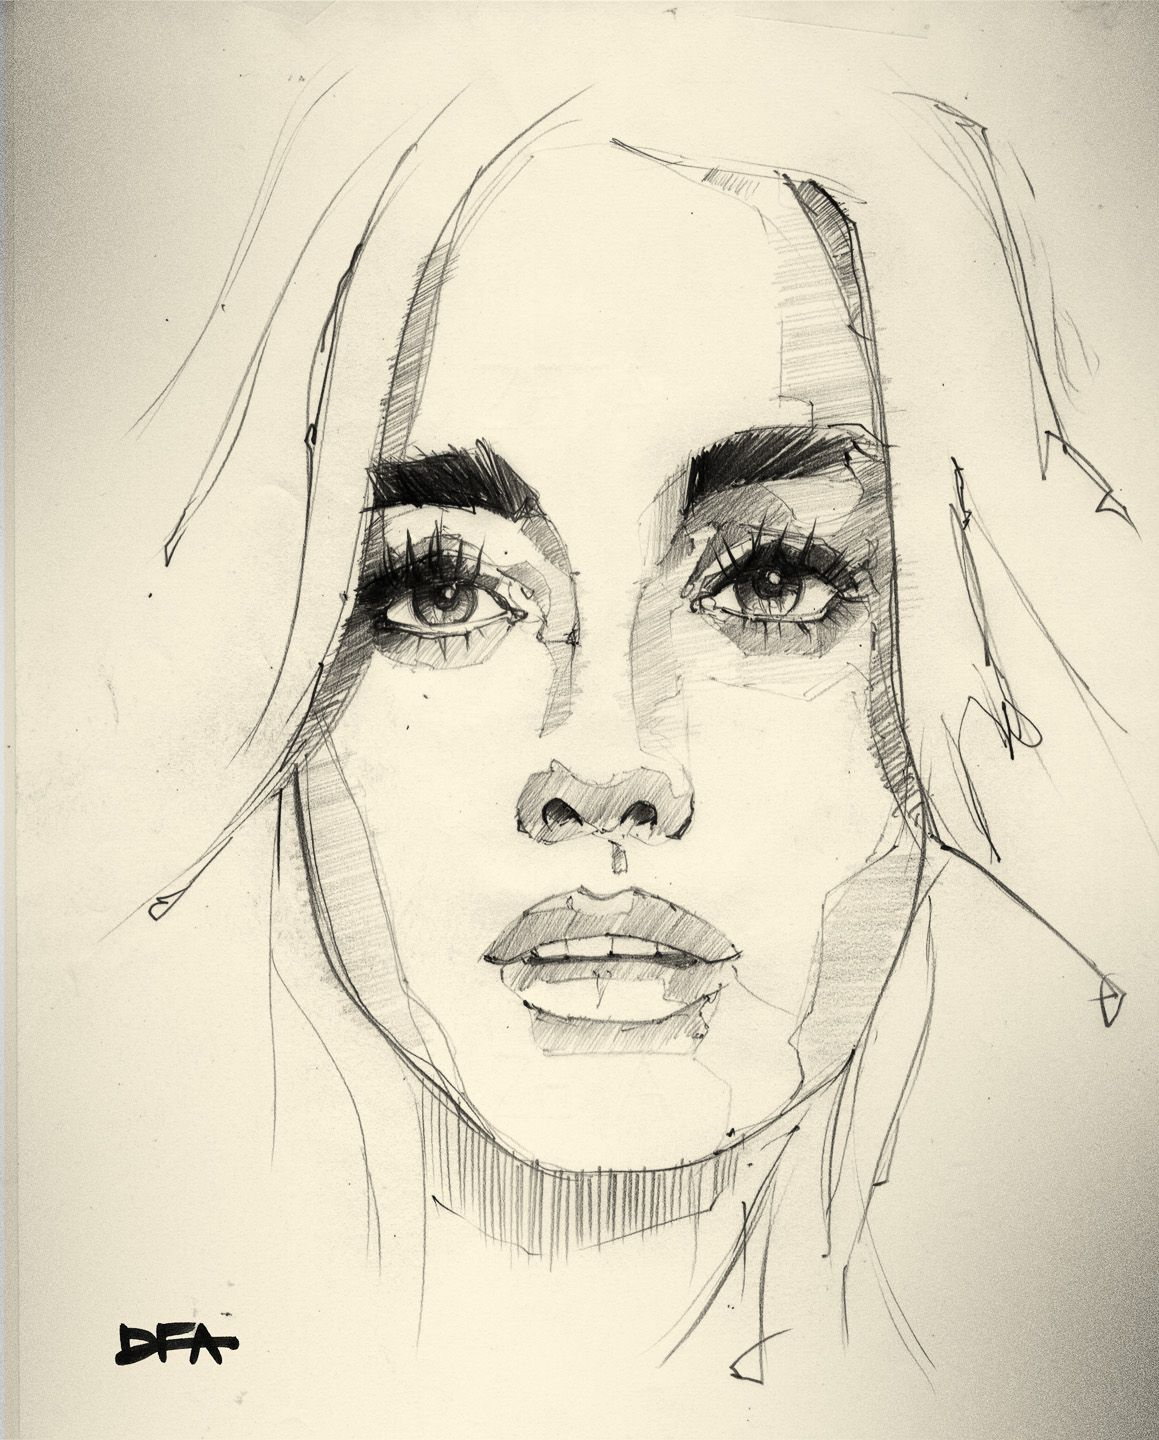 Drawing stunning lines gorgeous sketch and great soft technique i love it drawingideas drawingfaces artsketchbookideas sketching